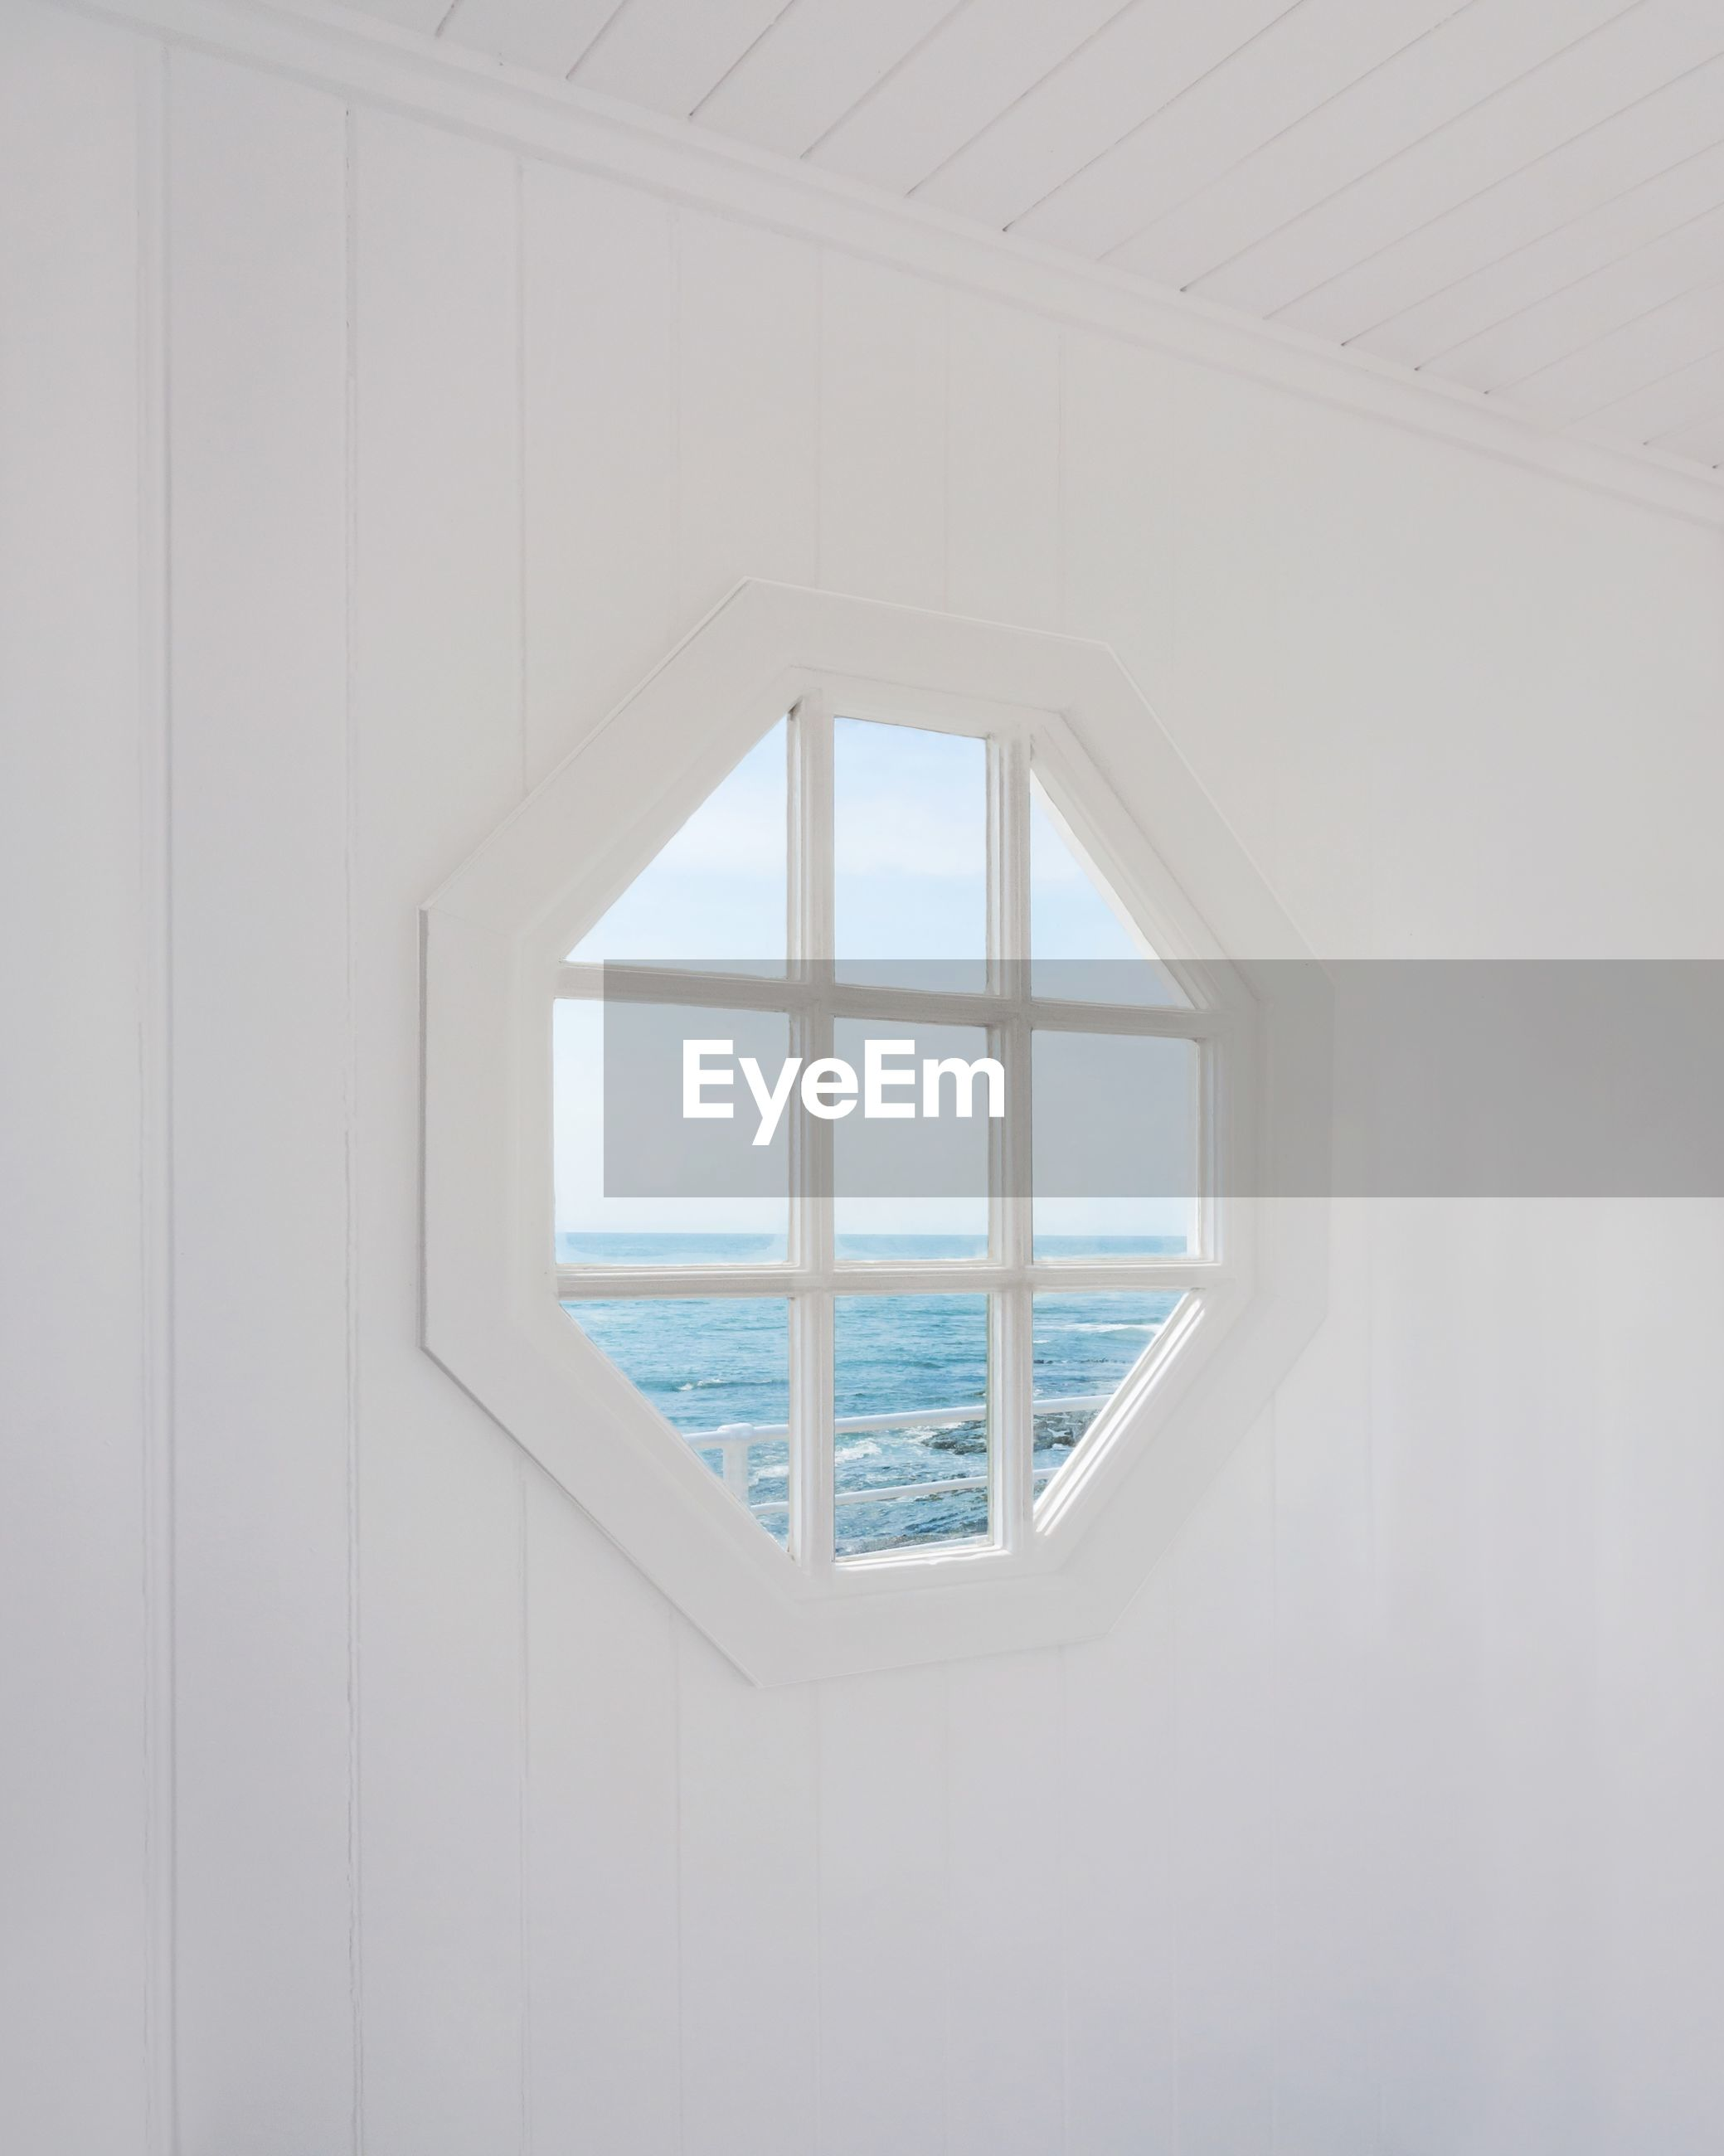 window, day, sea, architecture, glass - material, water, no people, nature, transparent, indoors, sky, built structure, white color, design, geometric shape, pattern, shape, horizon over water, window frame, ceiling